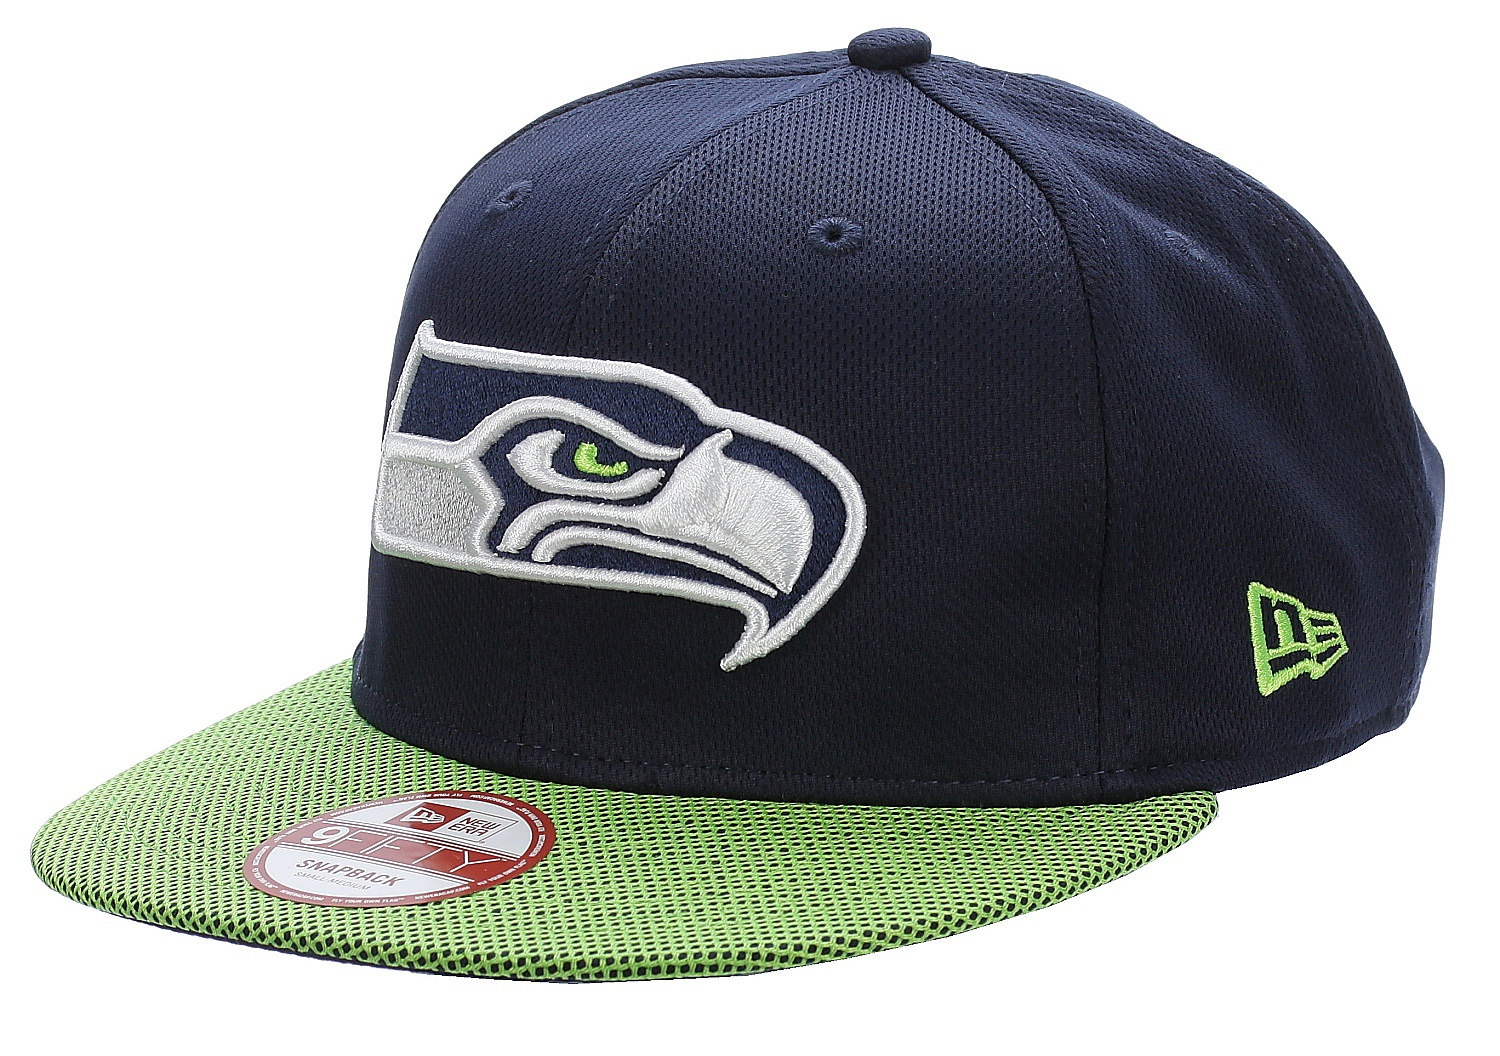 Shop new Seattle Seahawks Apparel from ustubes.ml, if your blood runs navy, green and grey. Fanatics stocks Seahawks apparel for men, women, and kids, so every an can cheer on the Seahawks in .